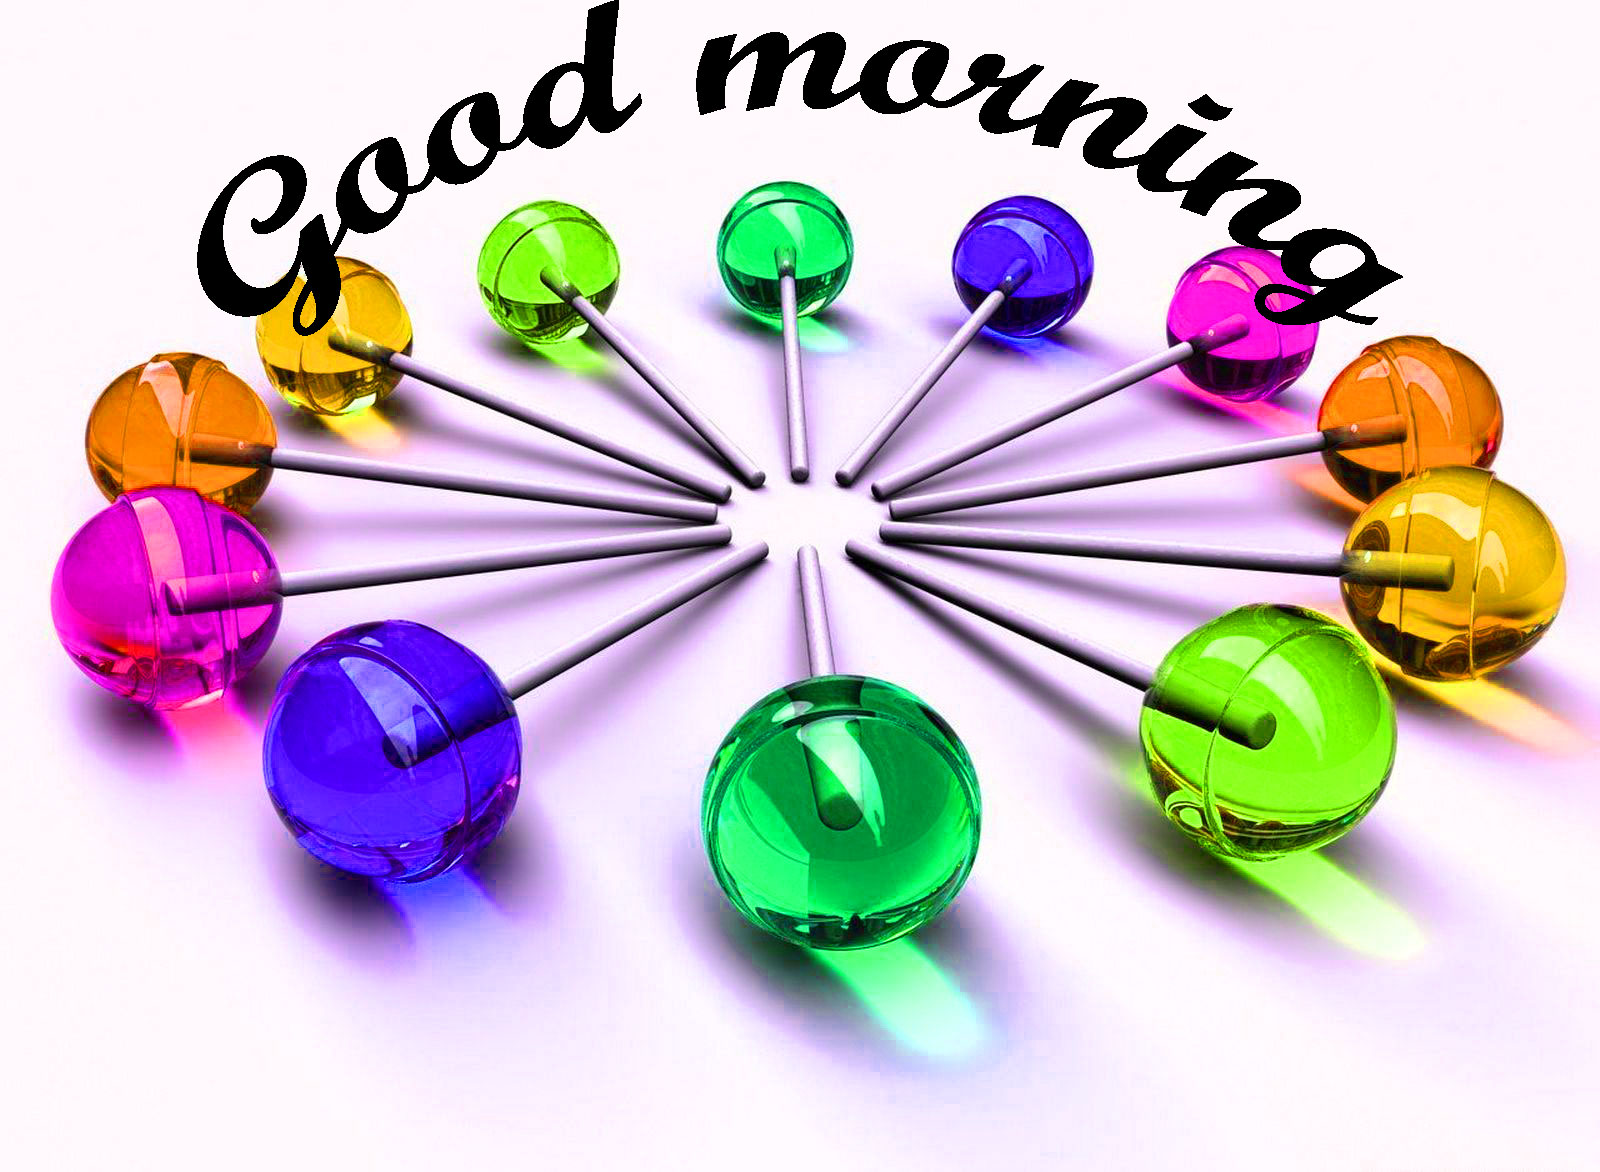 BEAUTIFUL 3D GOOD MORNING IMAGES PHOTO PICS FREE DOWNLOAD